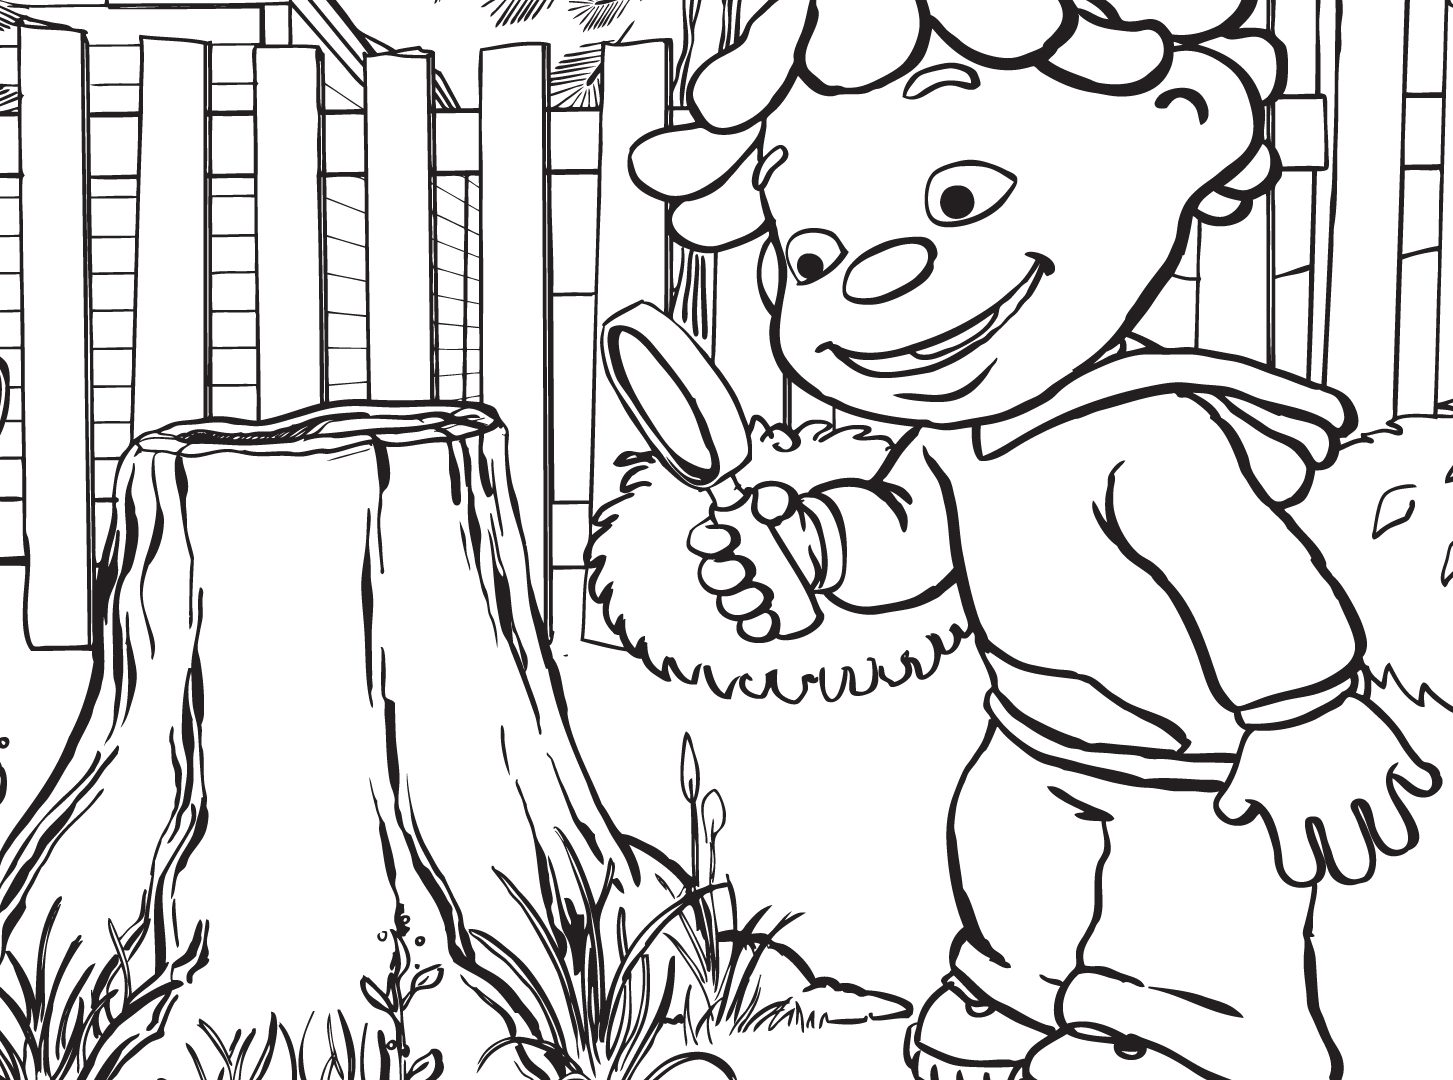 Landforms Coloring Pages For Kids at GetColorings.com